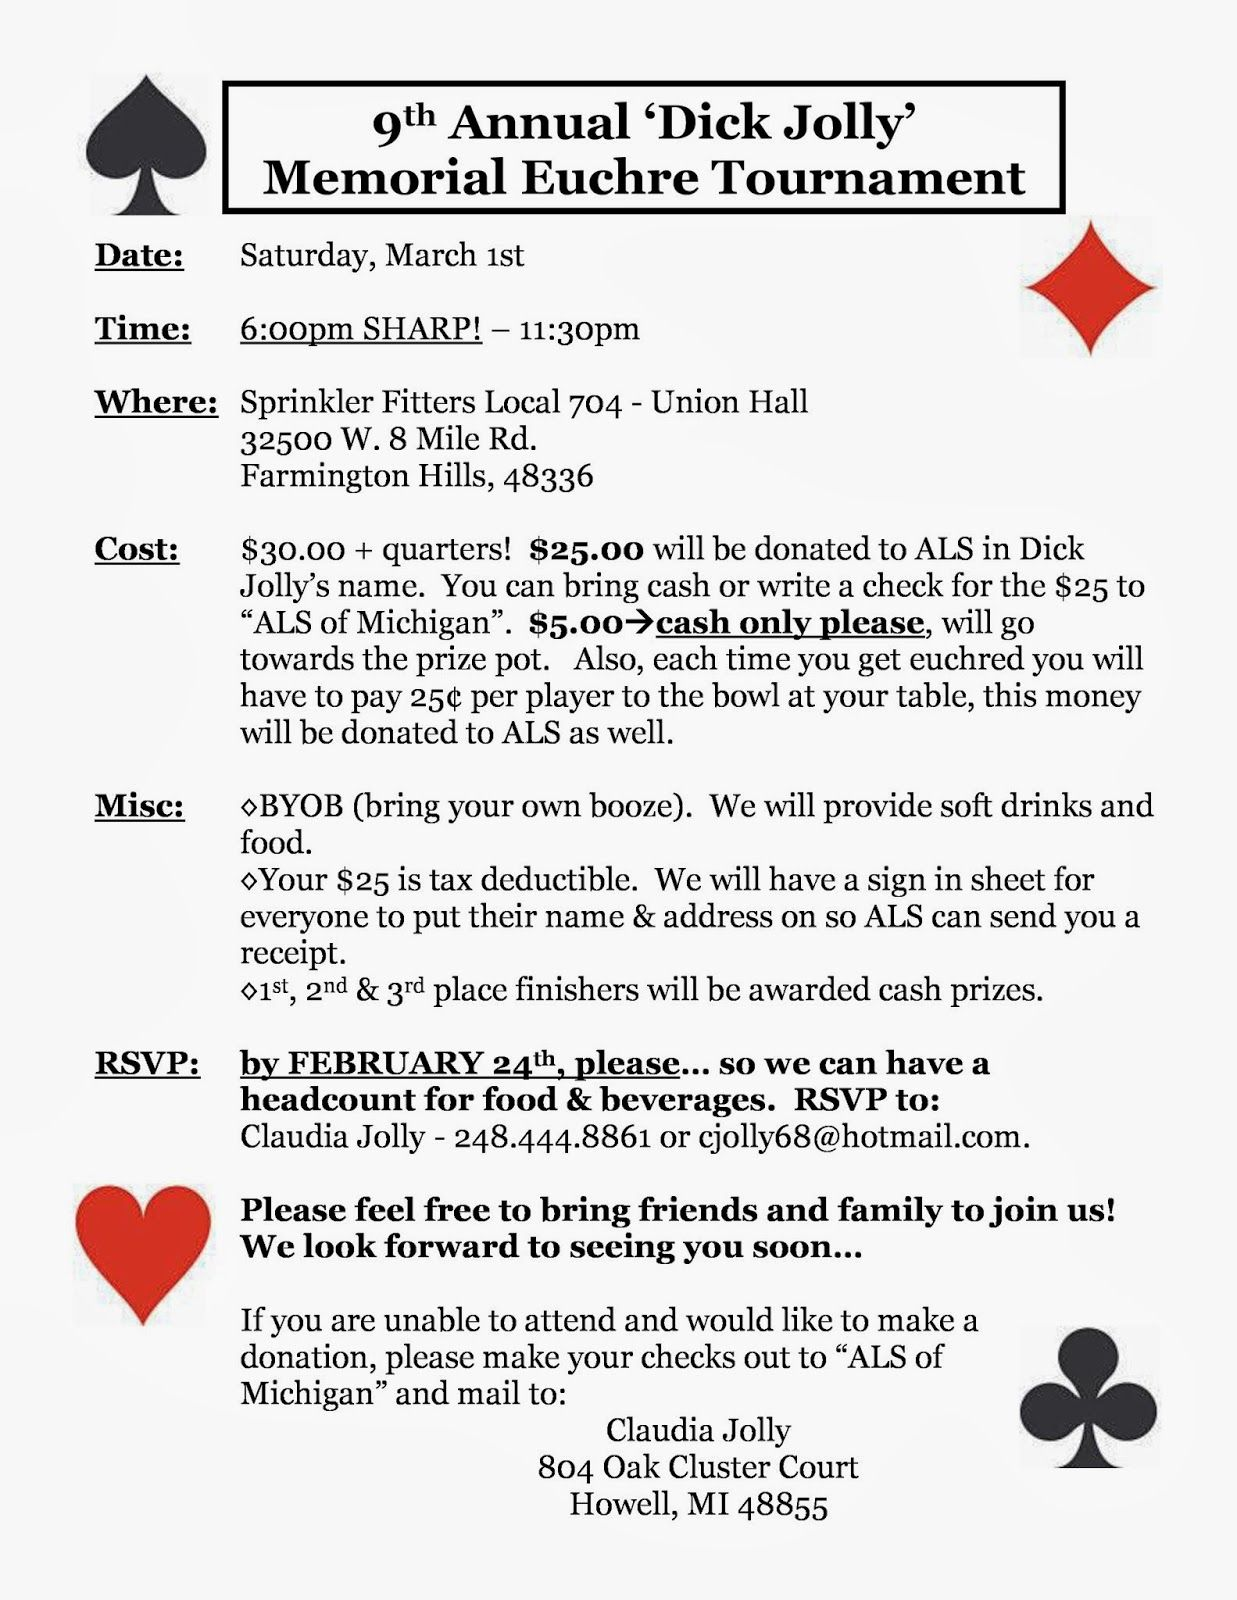 Charity Euchre Fundraiser  March   Farmington Hills Mi